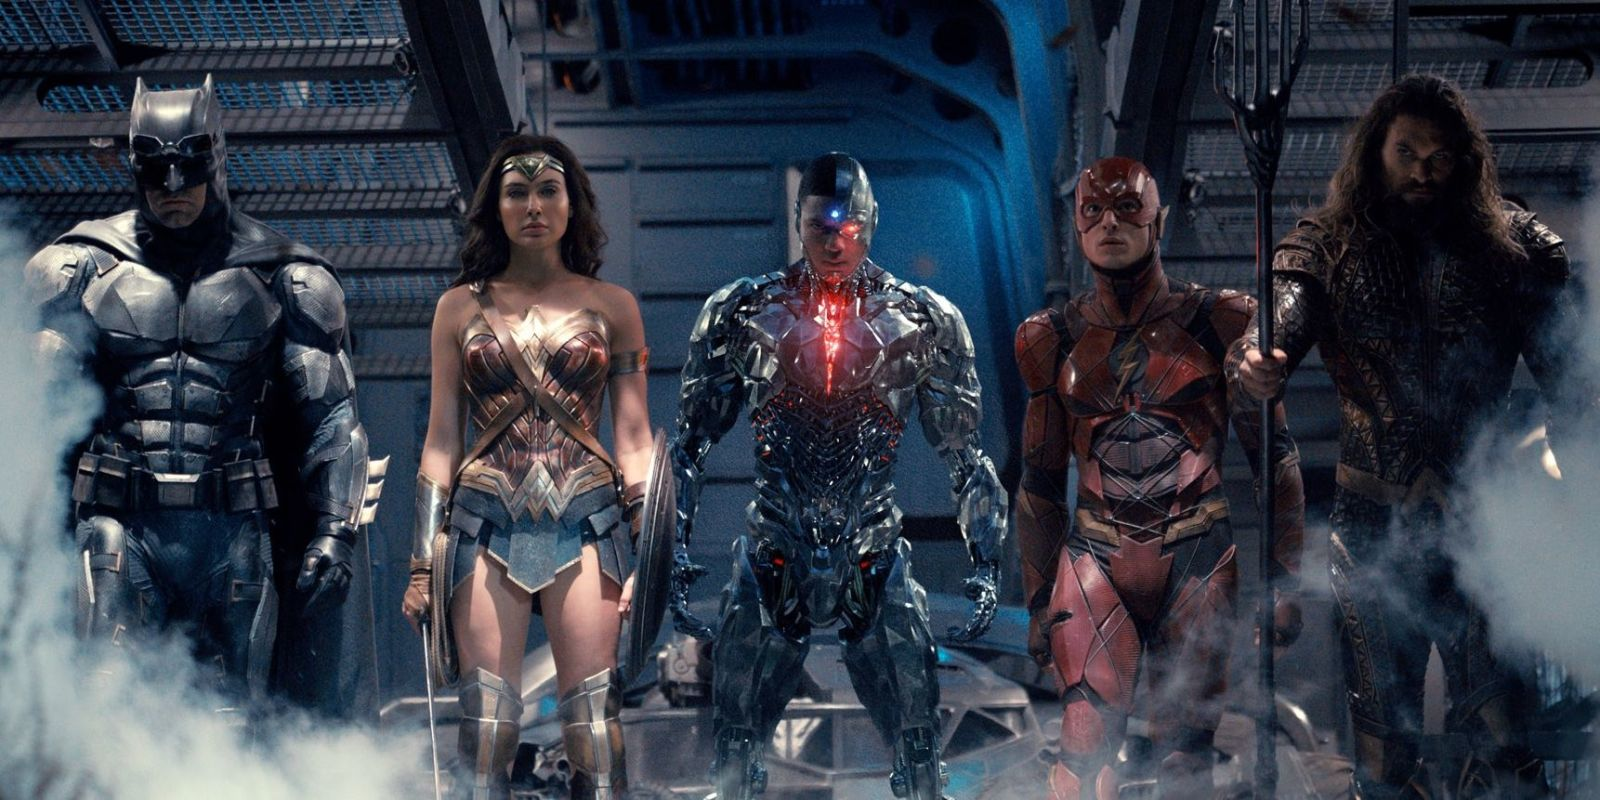 Image result for justice league movie stills